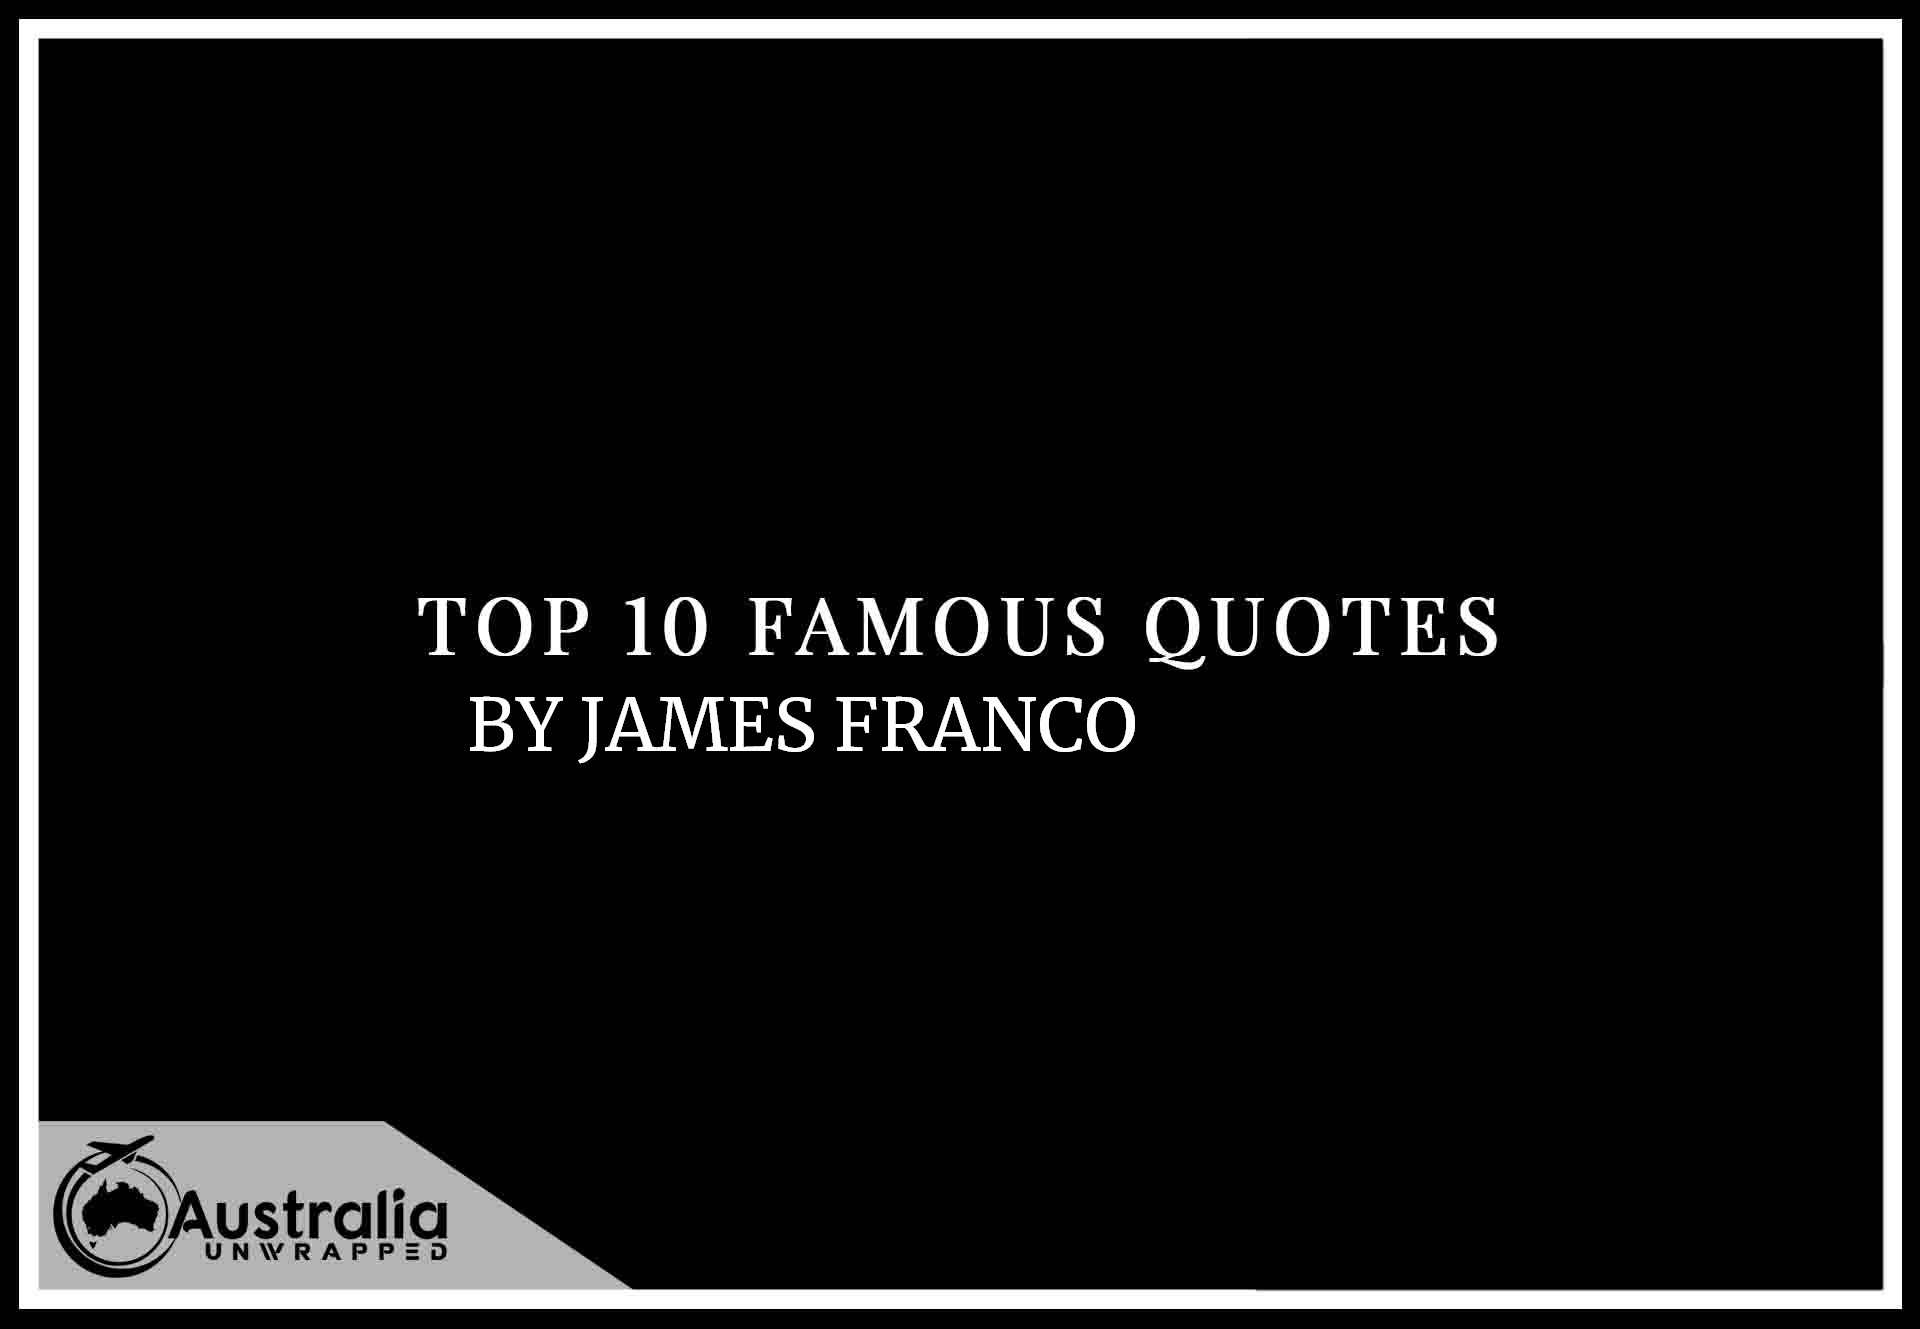 Top 10 Famous Quotes by Author James Franco